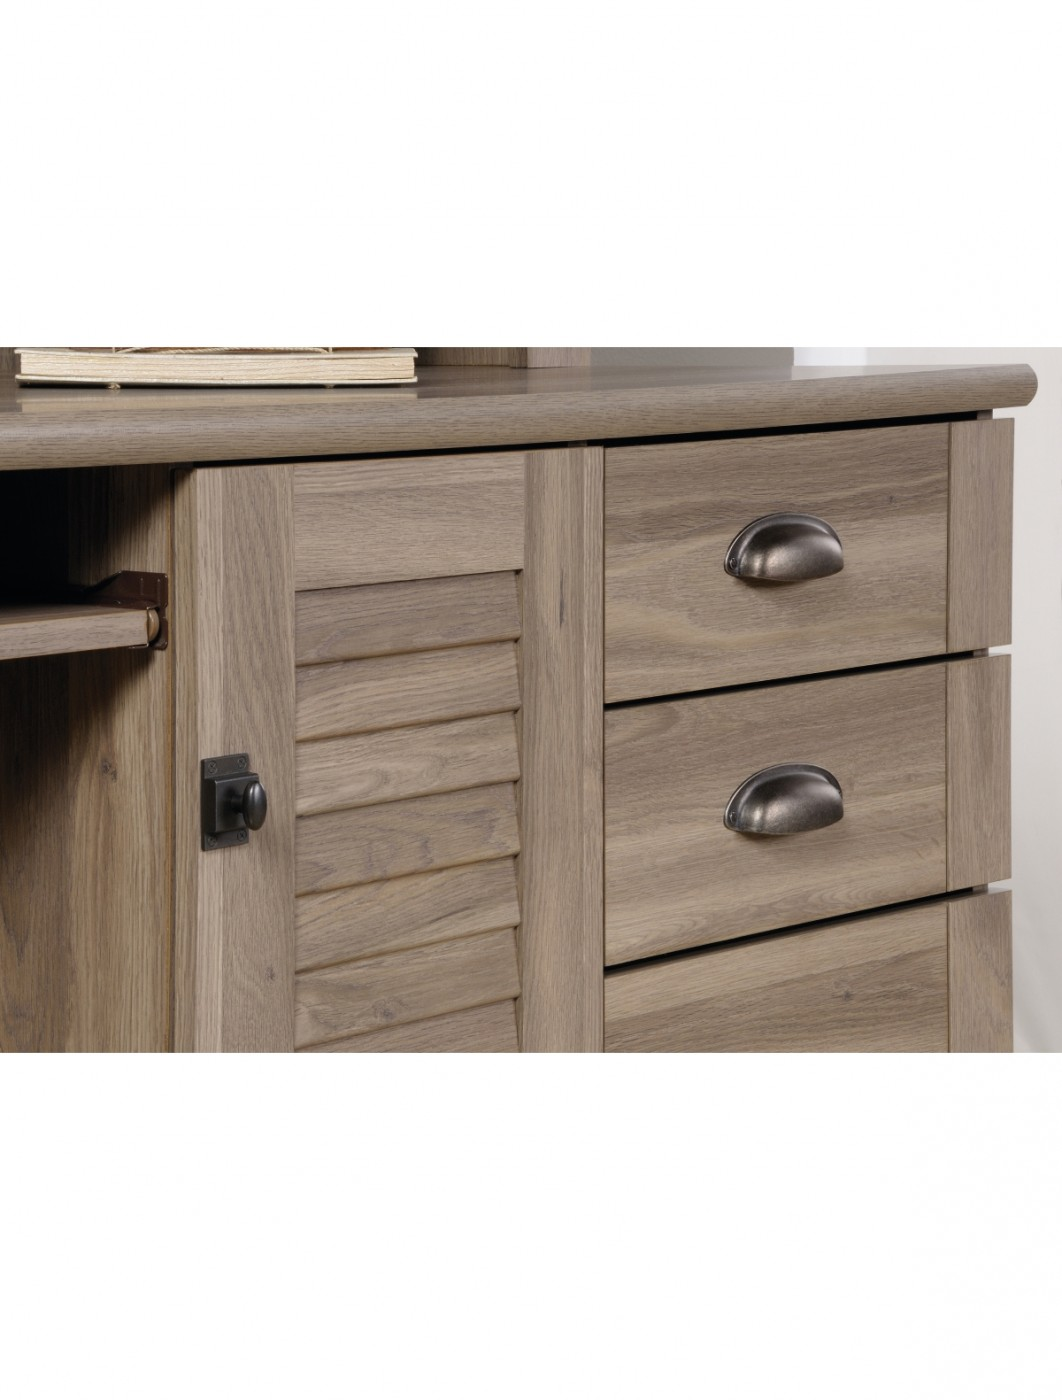 office desks with drawers. Home Office Desks - Teknik Louvre Hutch Desk 5415109 Enlarged View With Drawers I